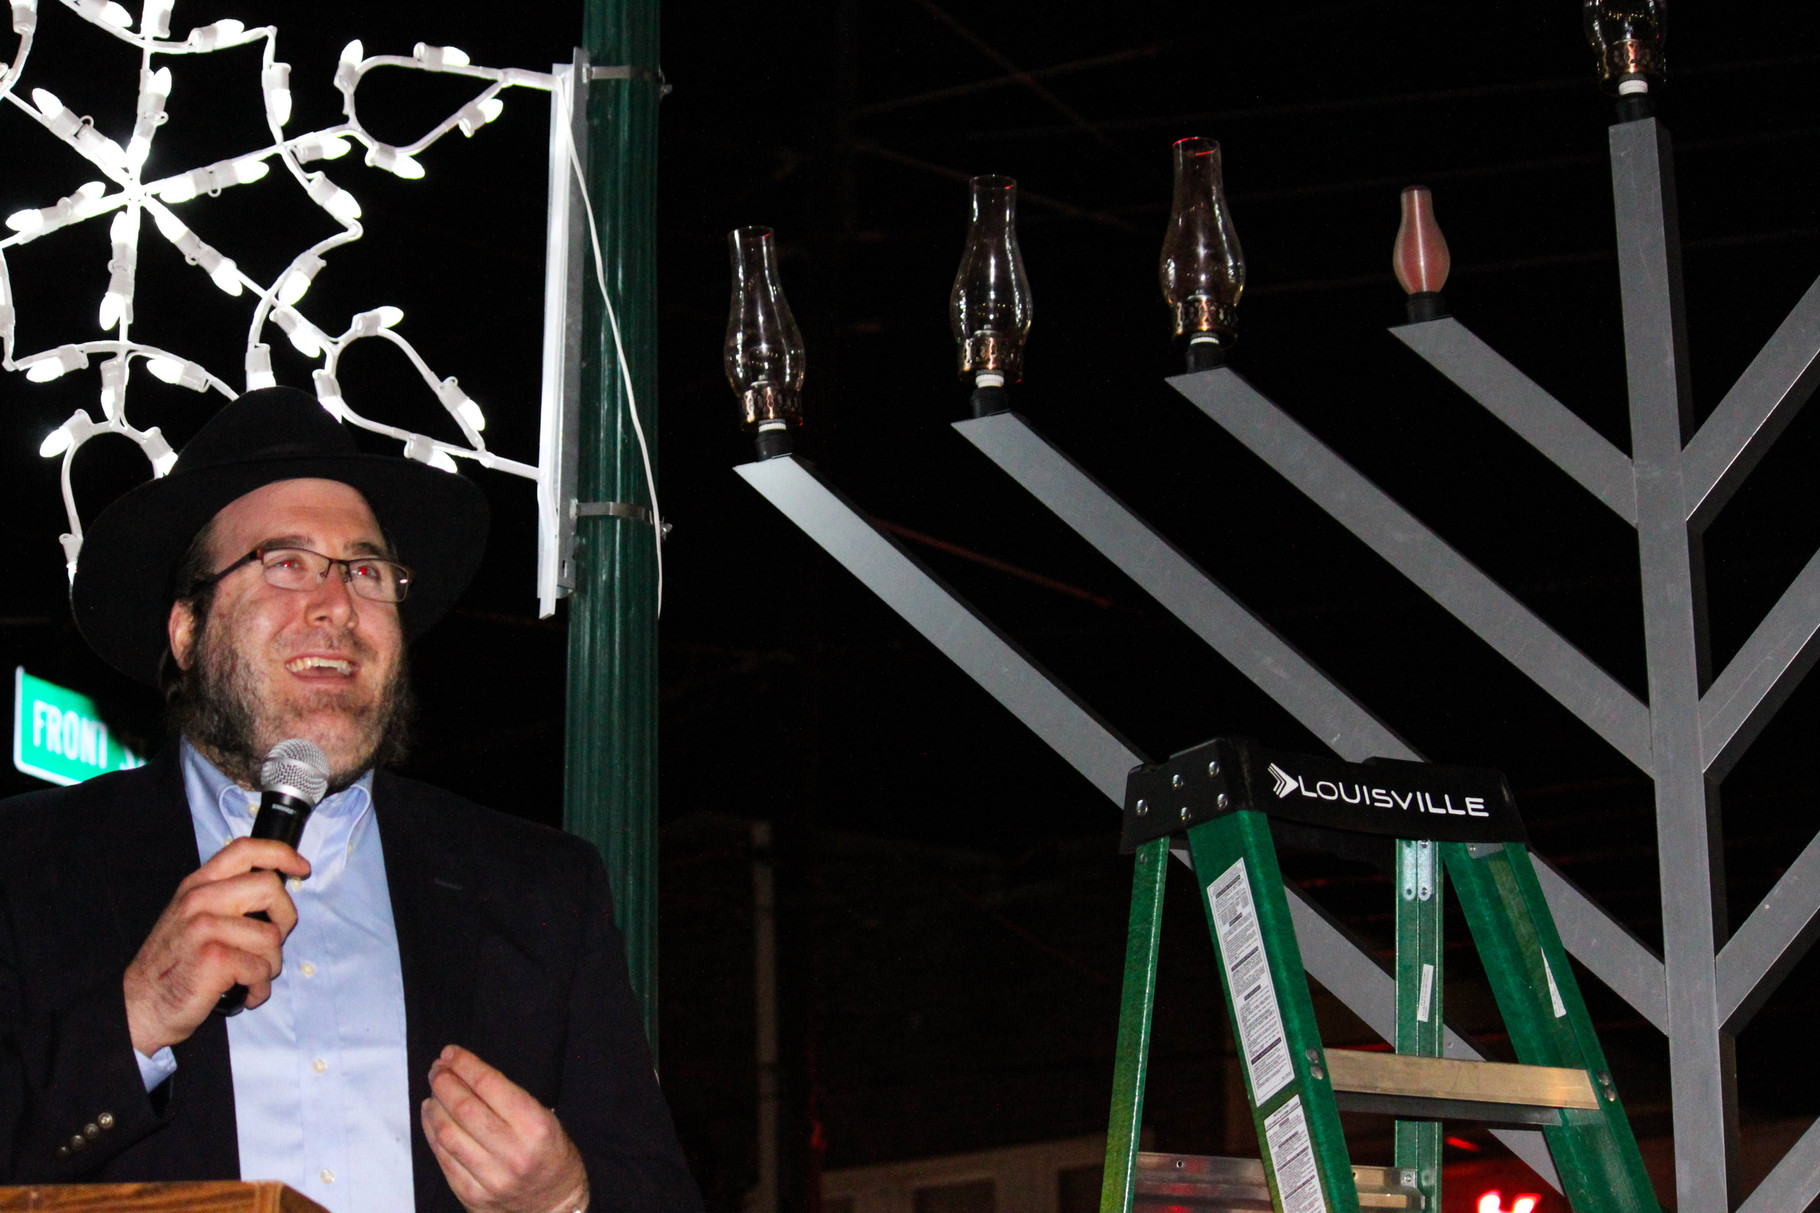 Rabbi Avrohom Blesofsky of Chabad of Union County welcomes Scotch Plains residents to the annual menorah lighting